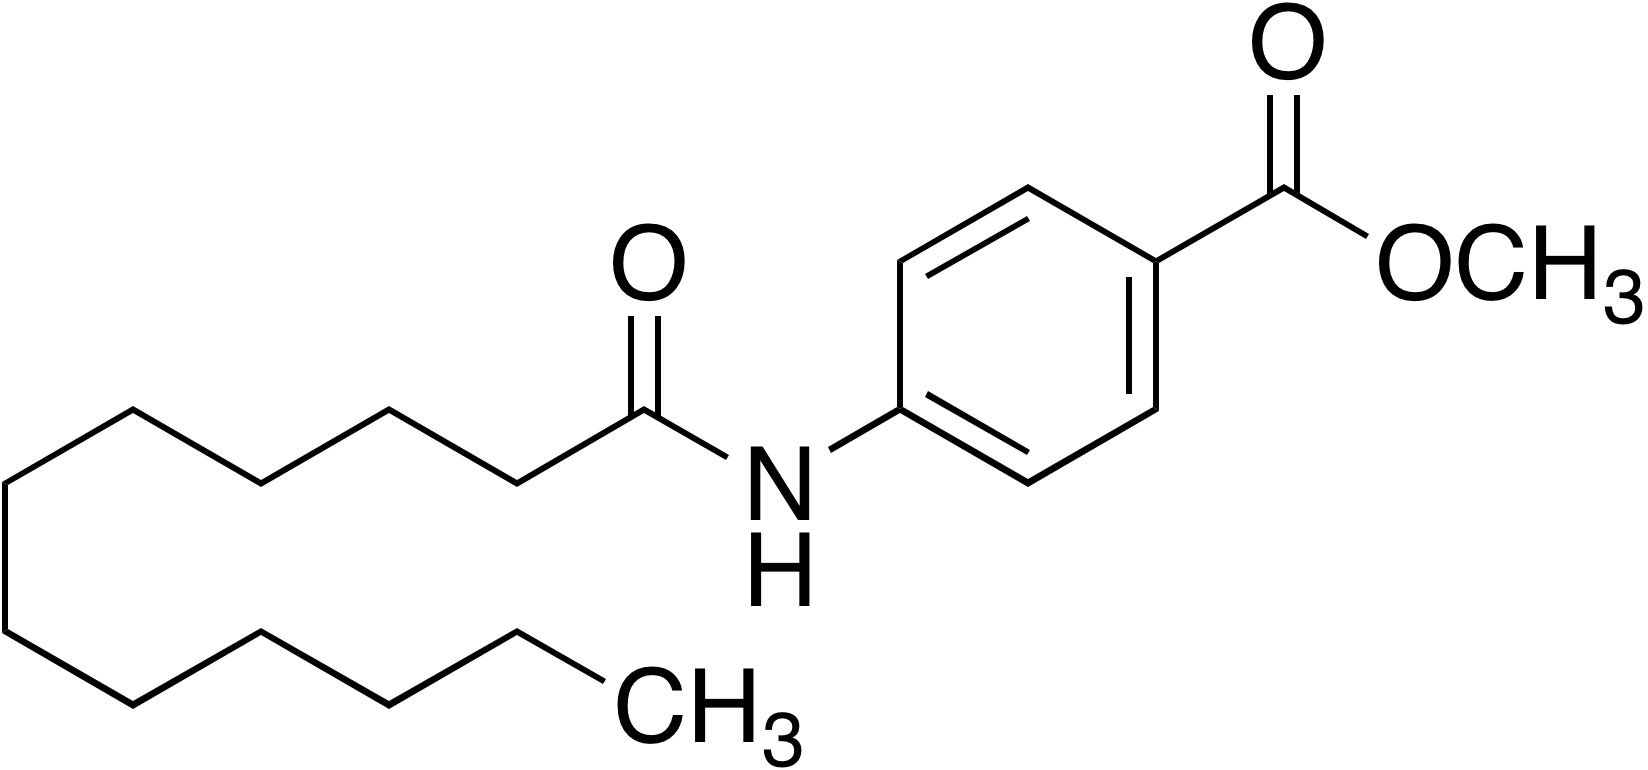 Methyl-4-dodecanamidobenzoate